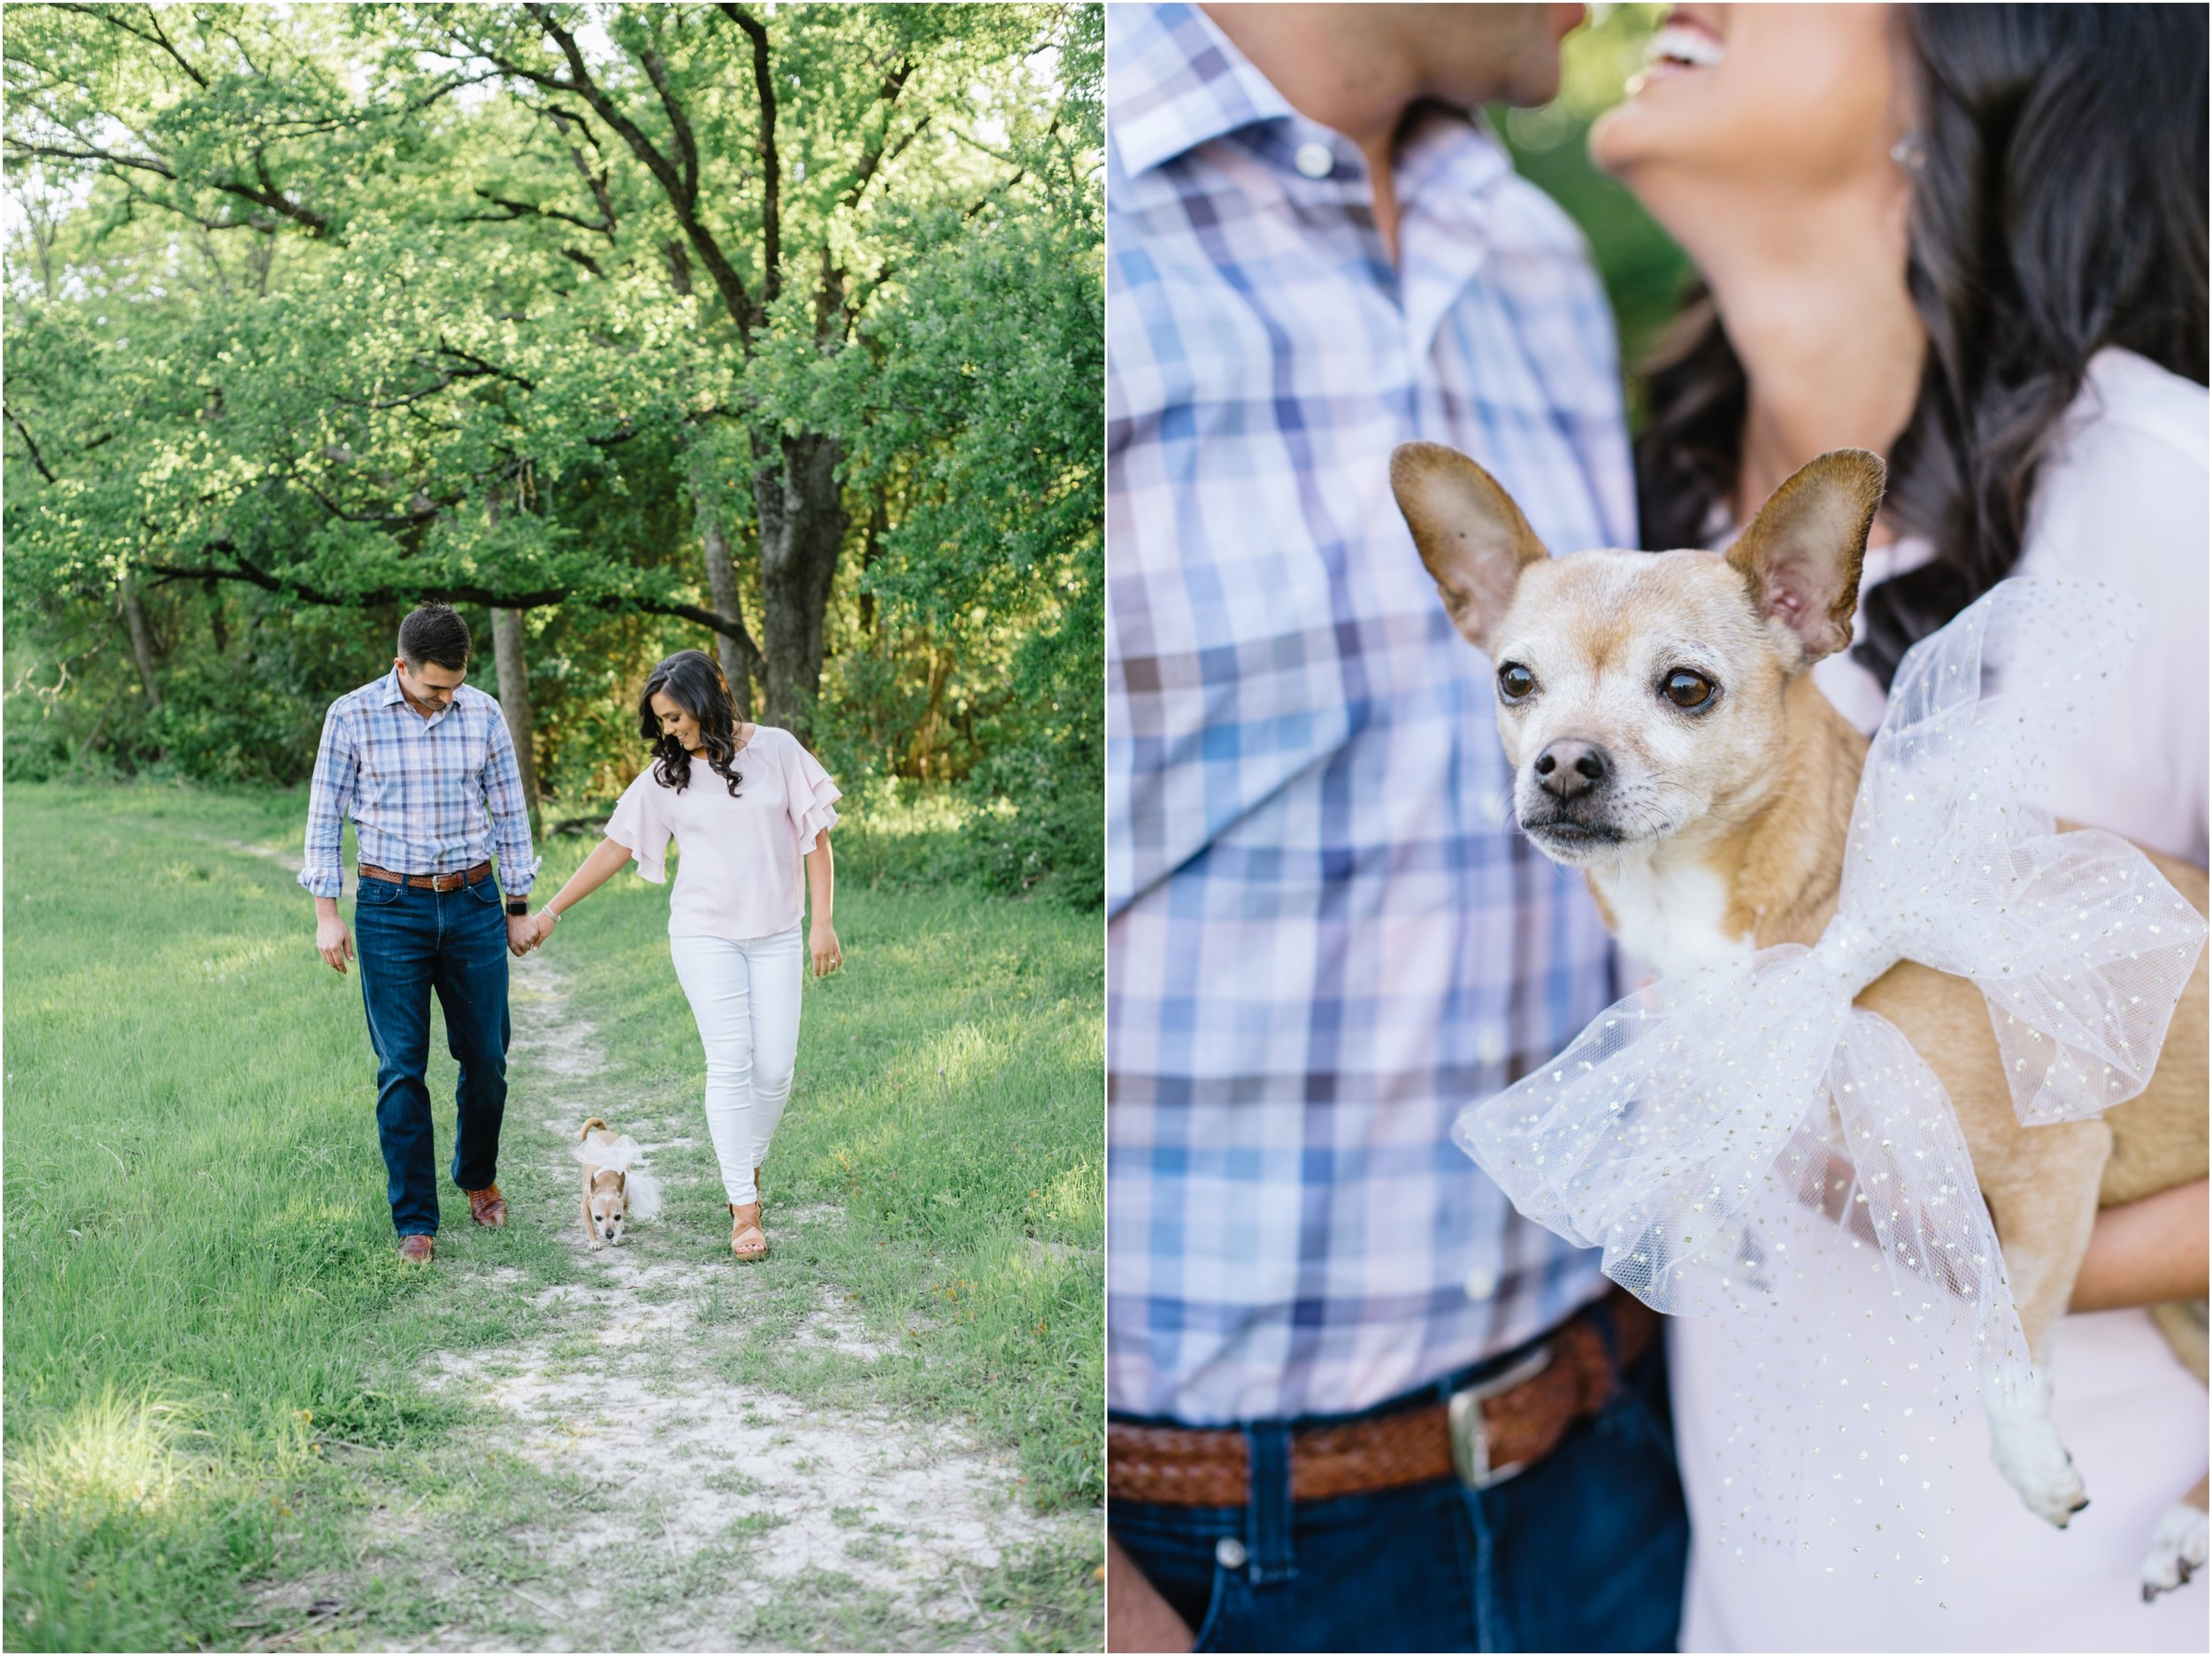 dallasweddingphotographer_texasweddingphotographer_texasweddingphotographers_dallasweddingphotographer_mattandjulieweddings_0847.jpg